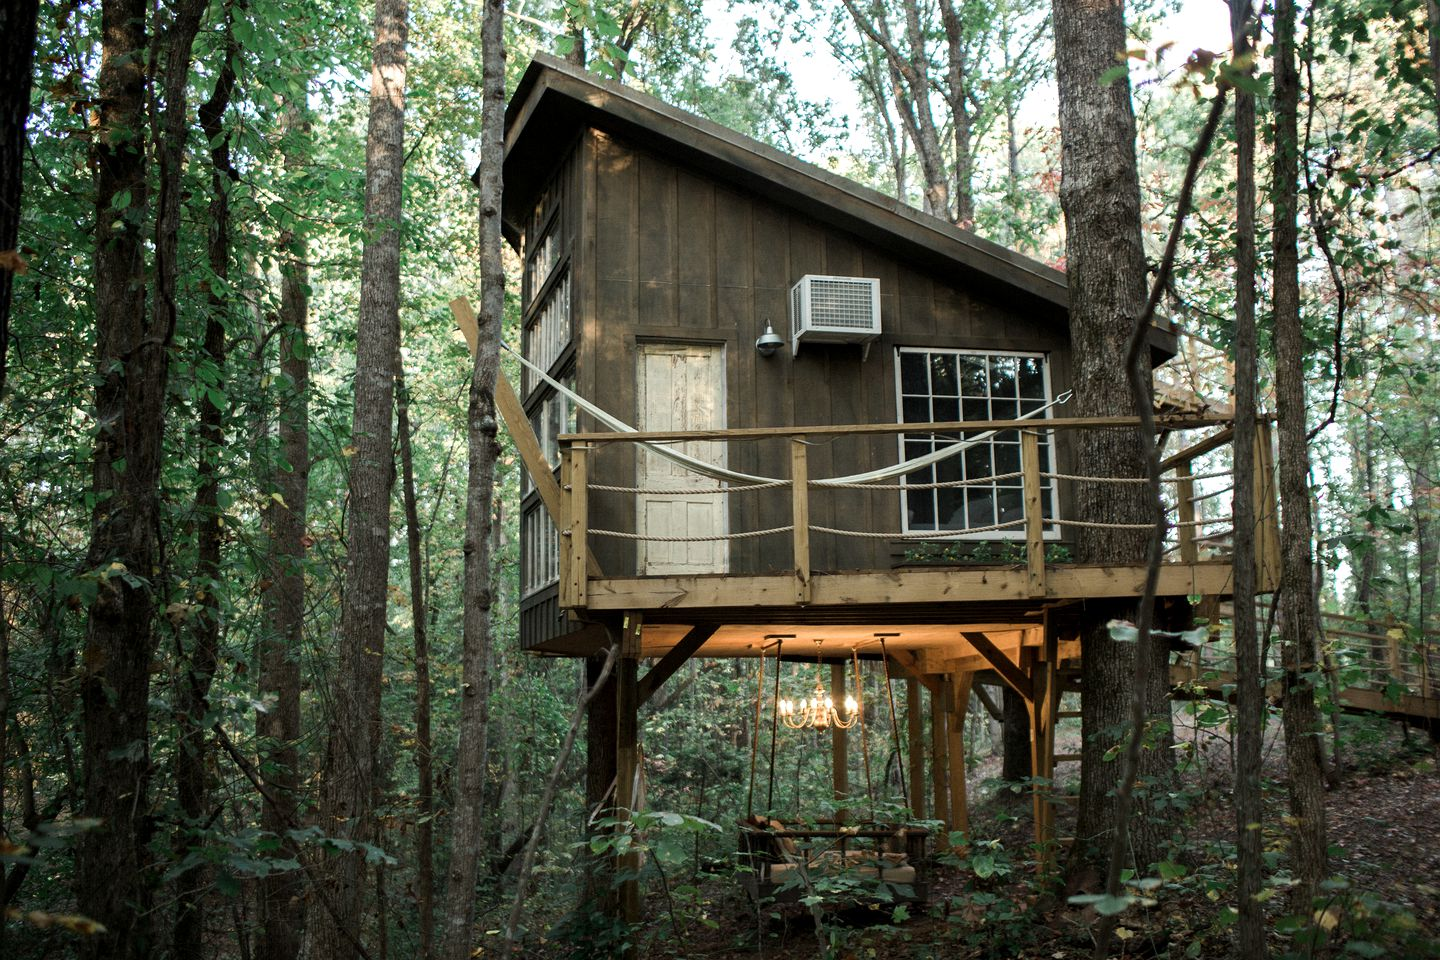 The exterior of the Walhalla tree house, perfect for glamping in South Carolina